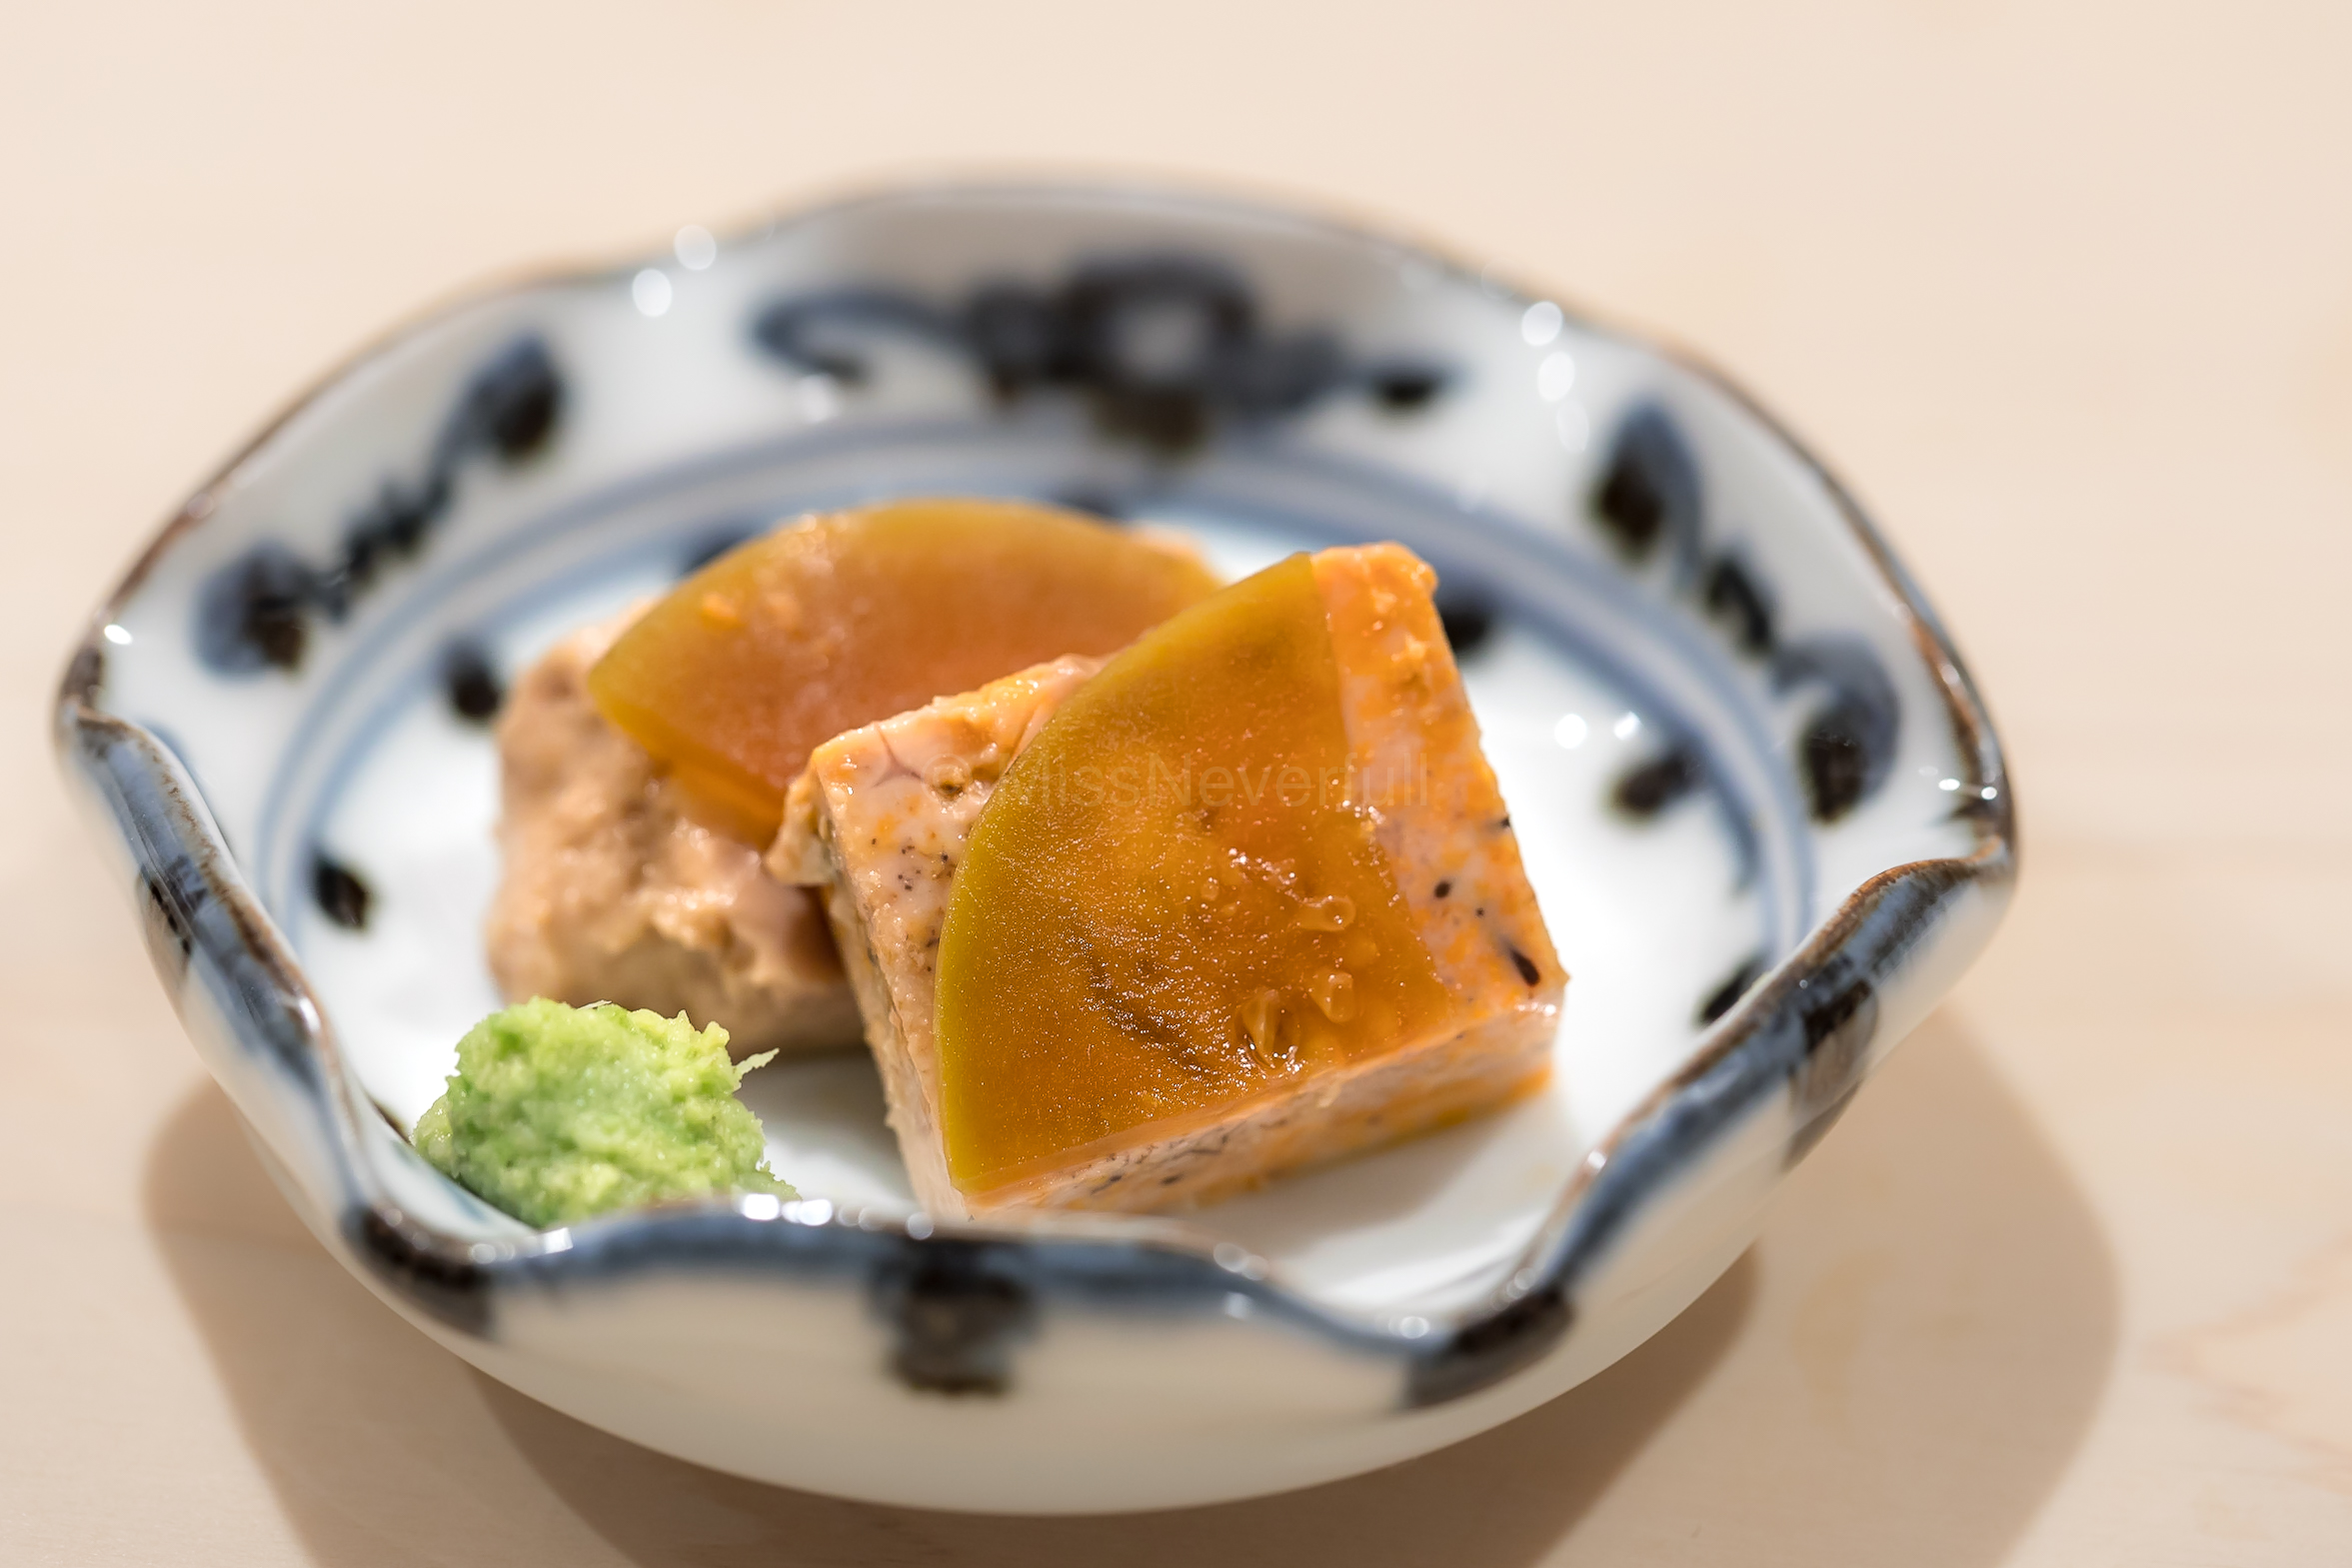 8. Ankimo (monkfish liver) with Nara pickles of baby watermelon